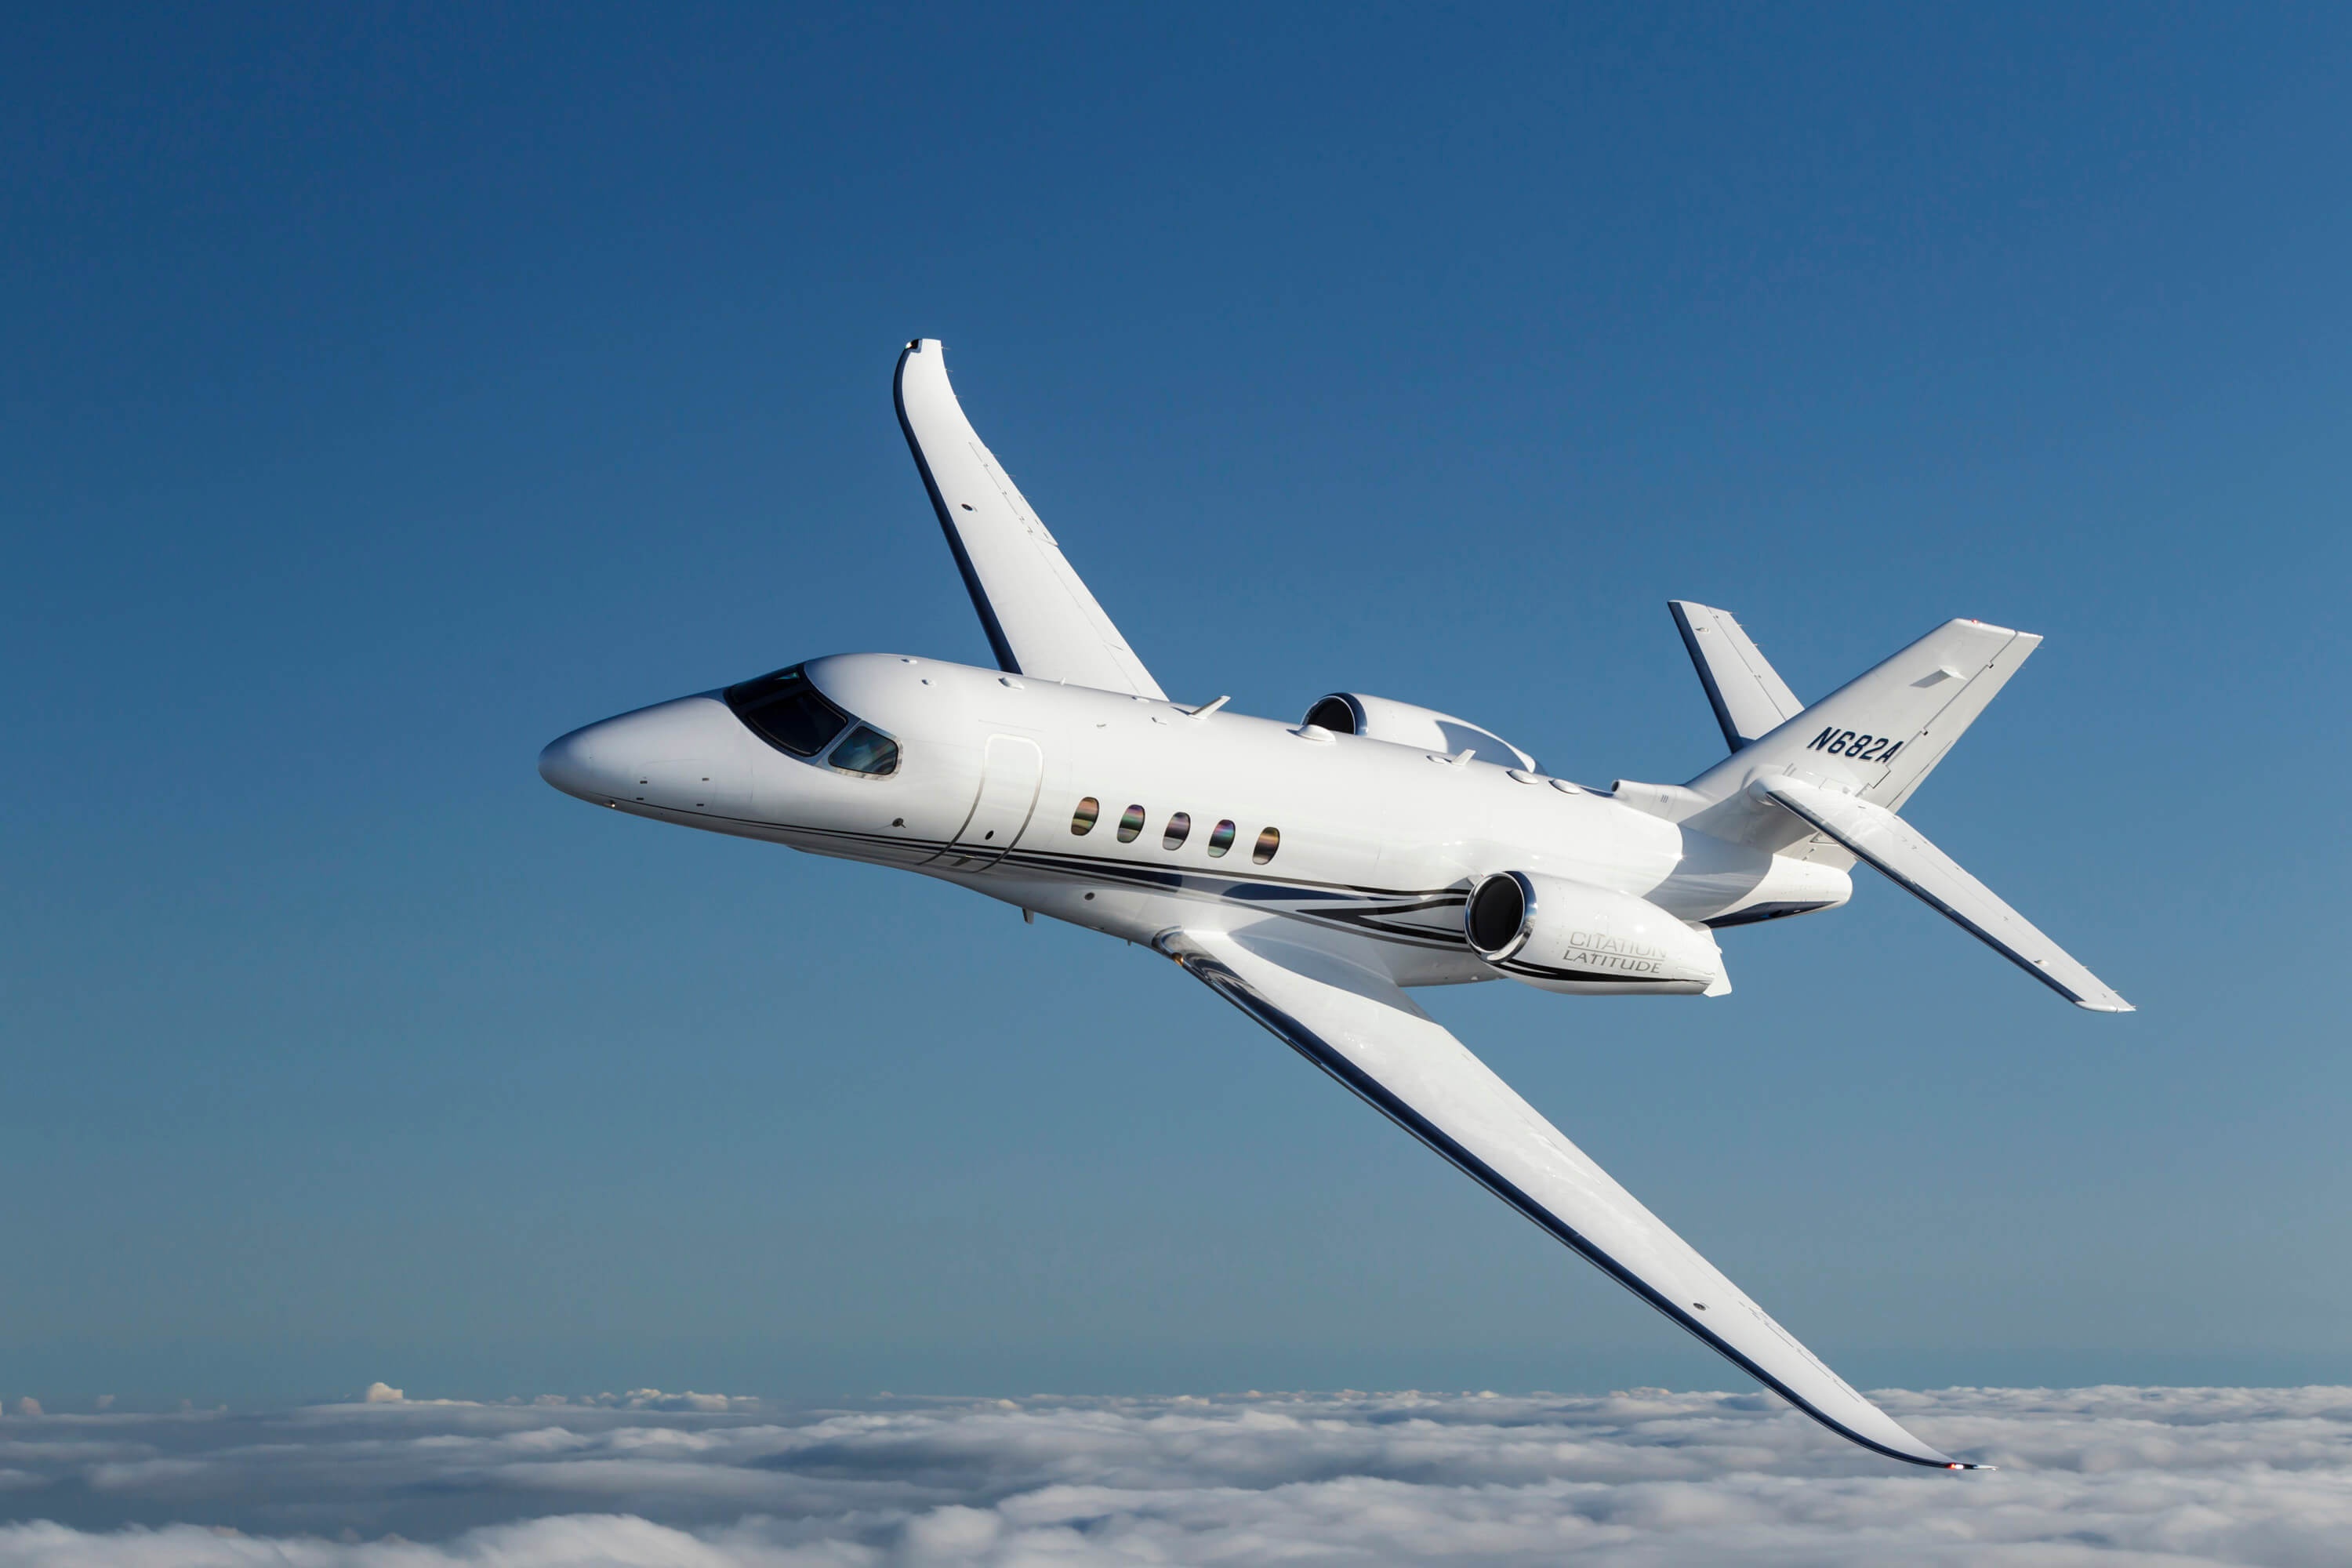 http://txtav.com/-/media/textron-aviation/images/news-events/media-gallery/jets/citation-latitude/kit/flight_04.ashx